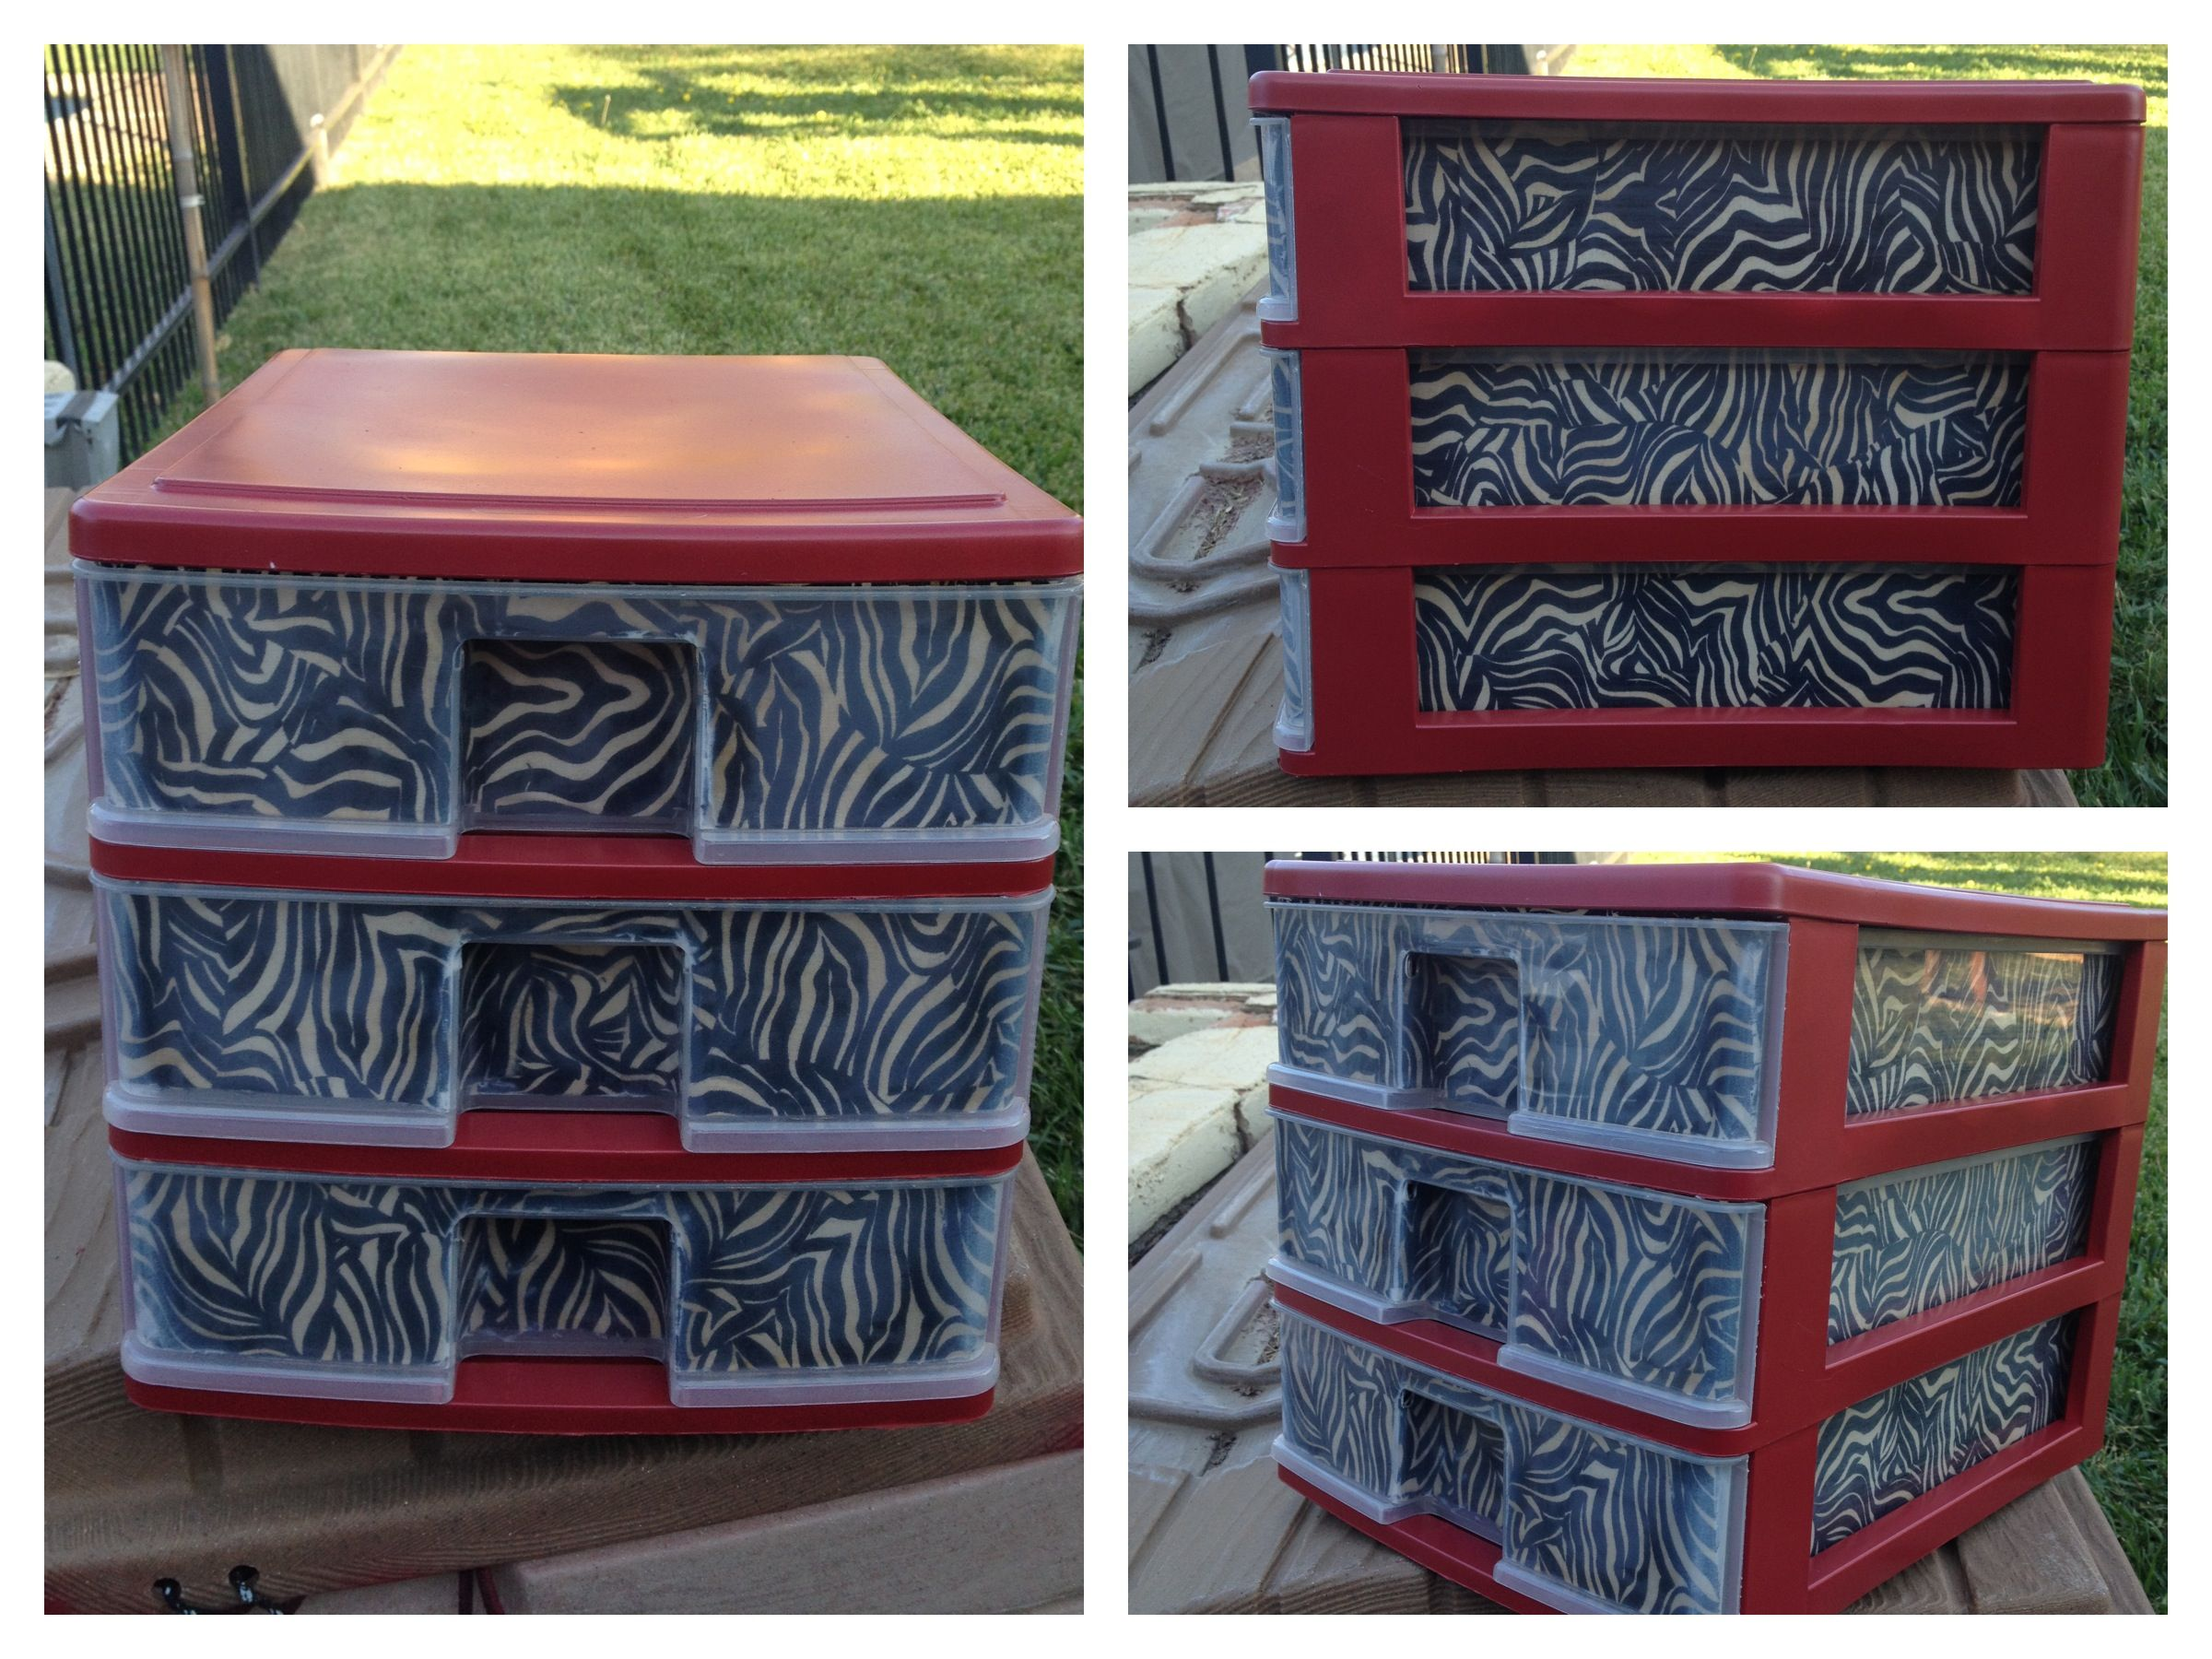 Plastic drawers that I decoupaged and painted. My wife